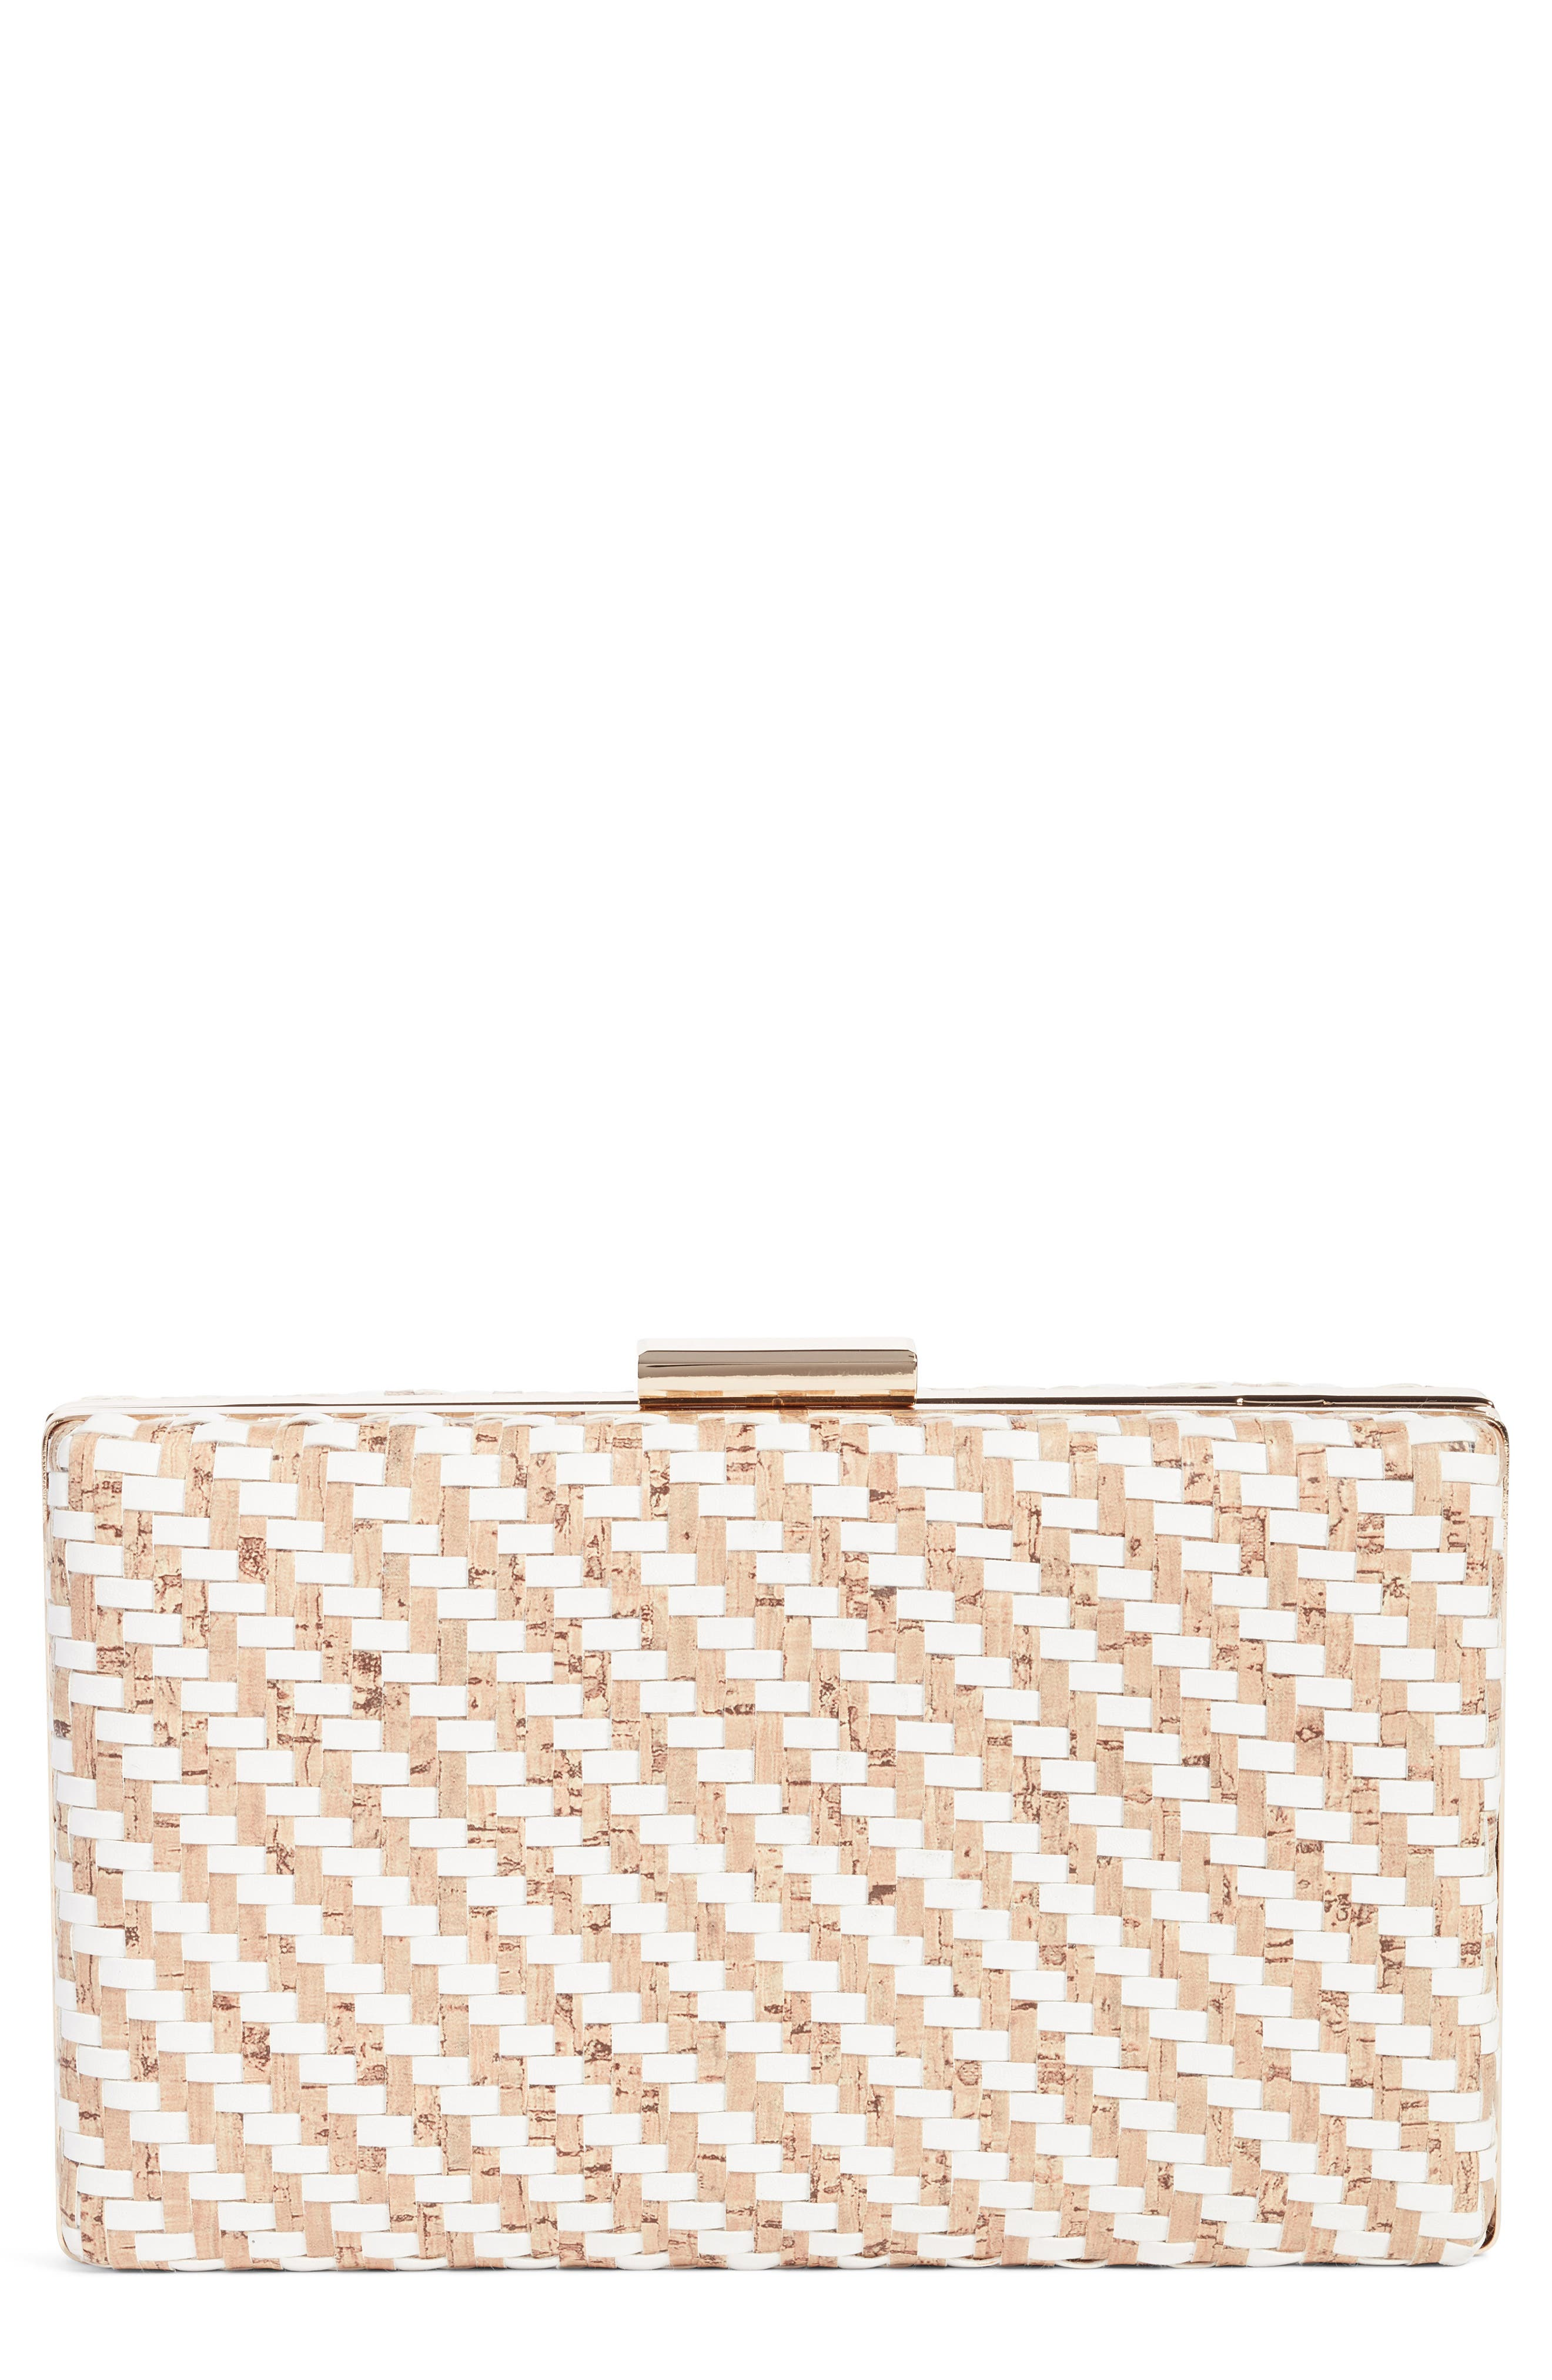 Woven Cork & Faux Leather Clutch,                         Main,                         color, White